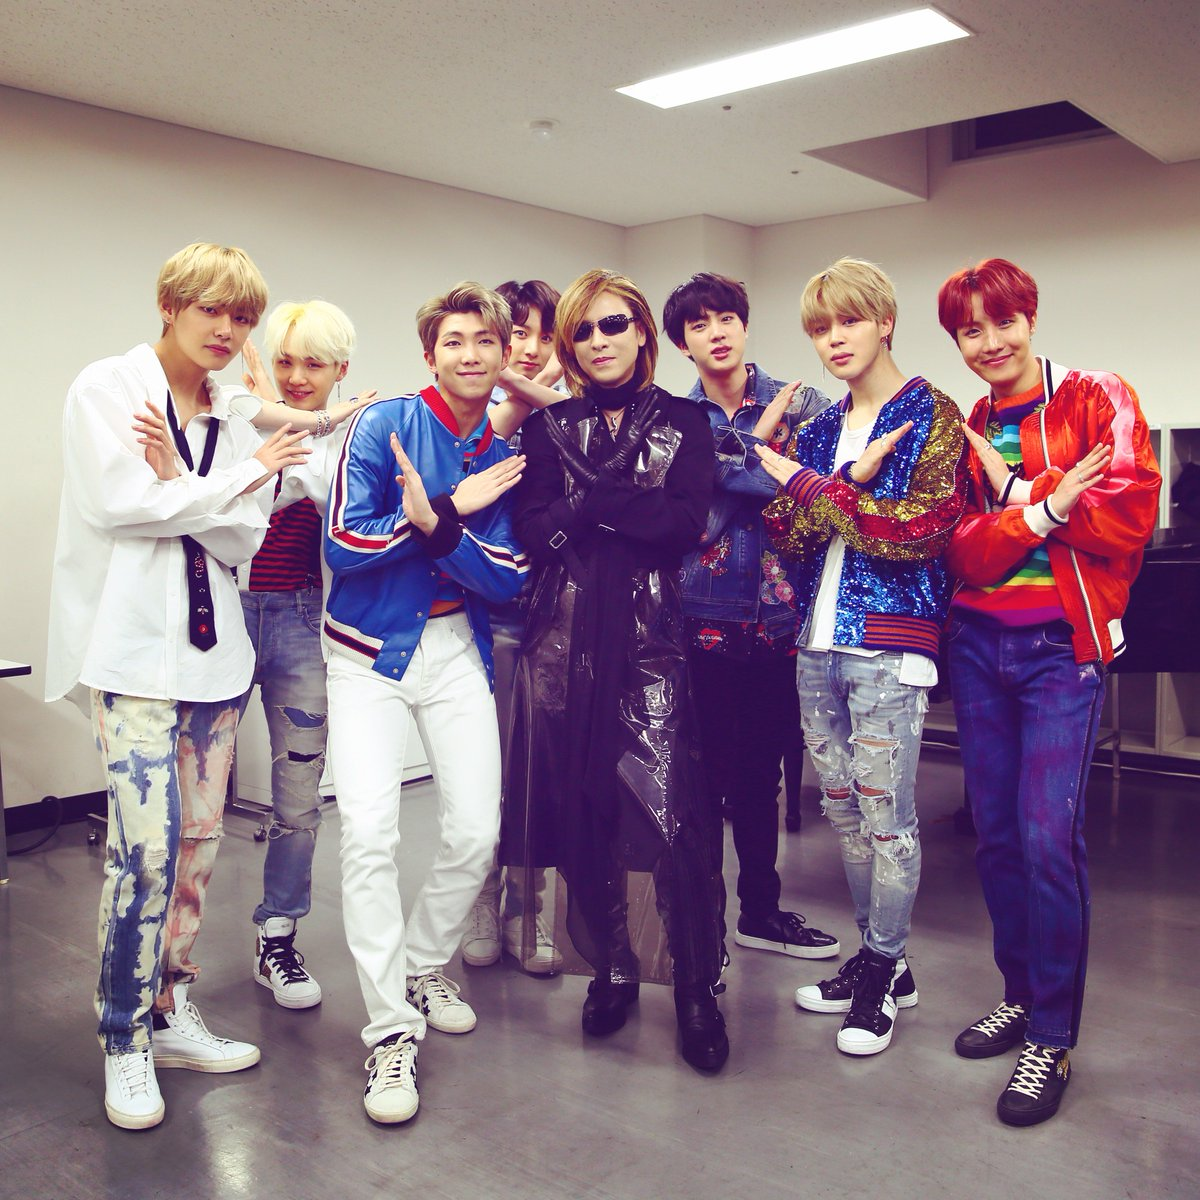 Thank you so much for visiting my dressing room at #MusicStation TV!  It was great to see your performance. is an a#BTSmazing talent & an amazing group! とても才能のあるグループだと思いました         https://t.co/P3OSMrocbypo#Mステse ! #防弾少年団 #Yoshiki #Xjapan #WeAreX